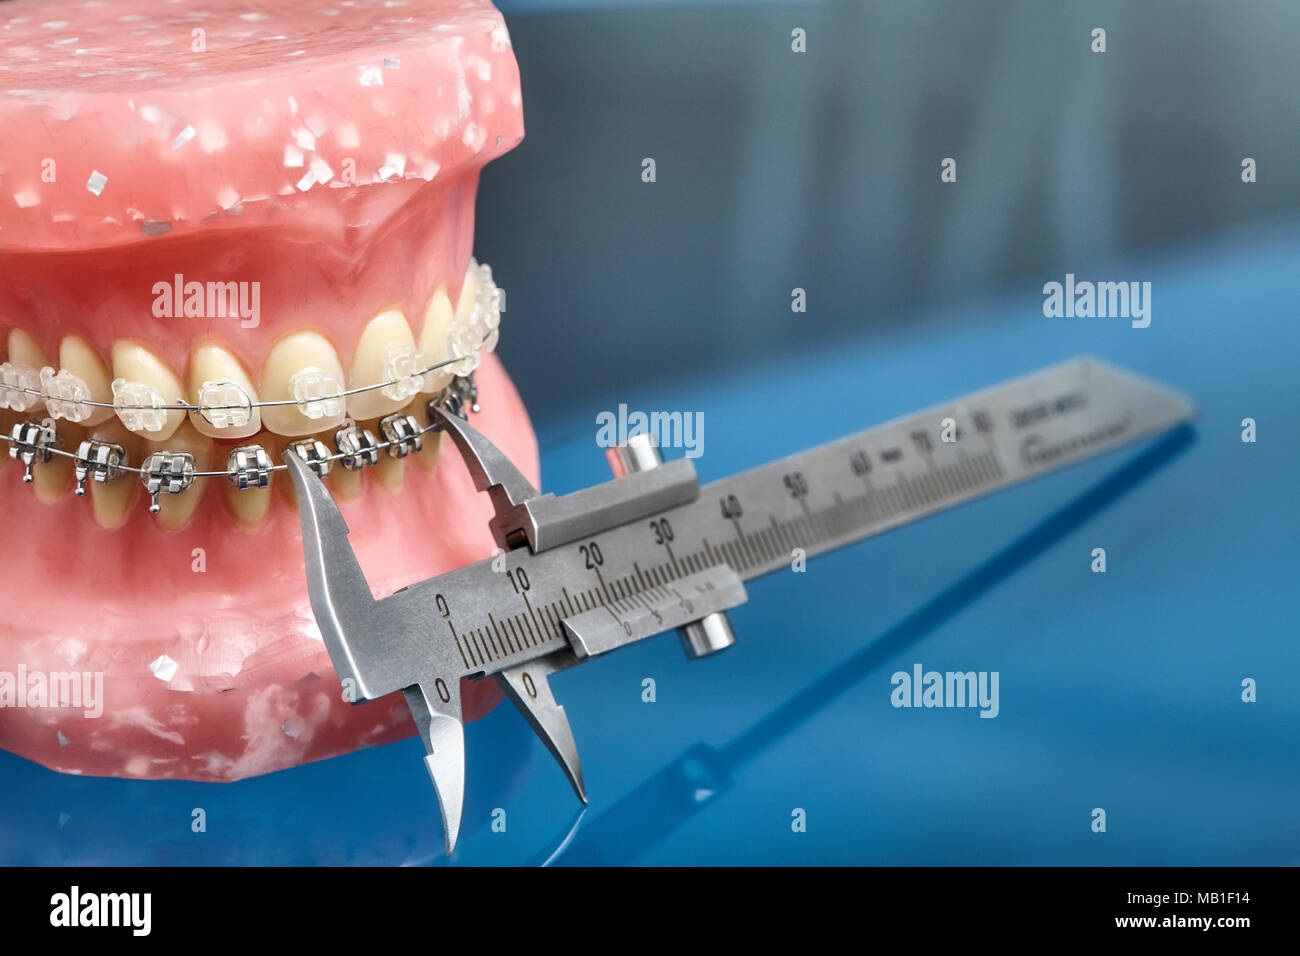 Crooked Teeth Smile Stock Photos & Crooked Teeth Smile Stock Images ...